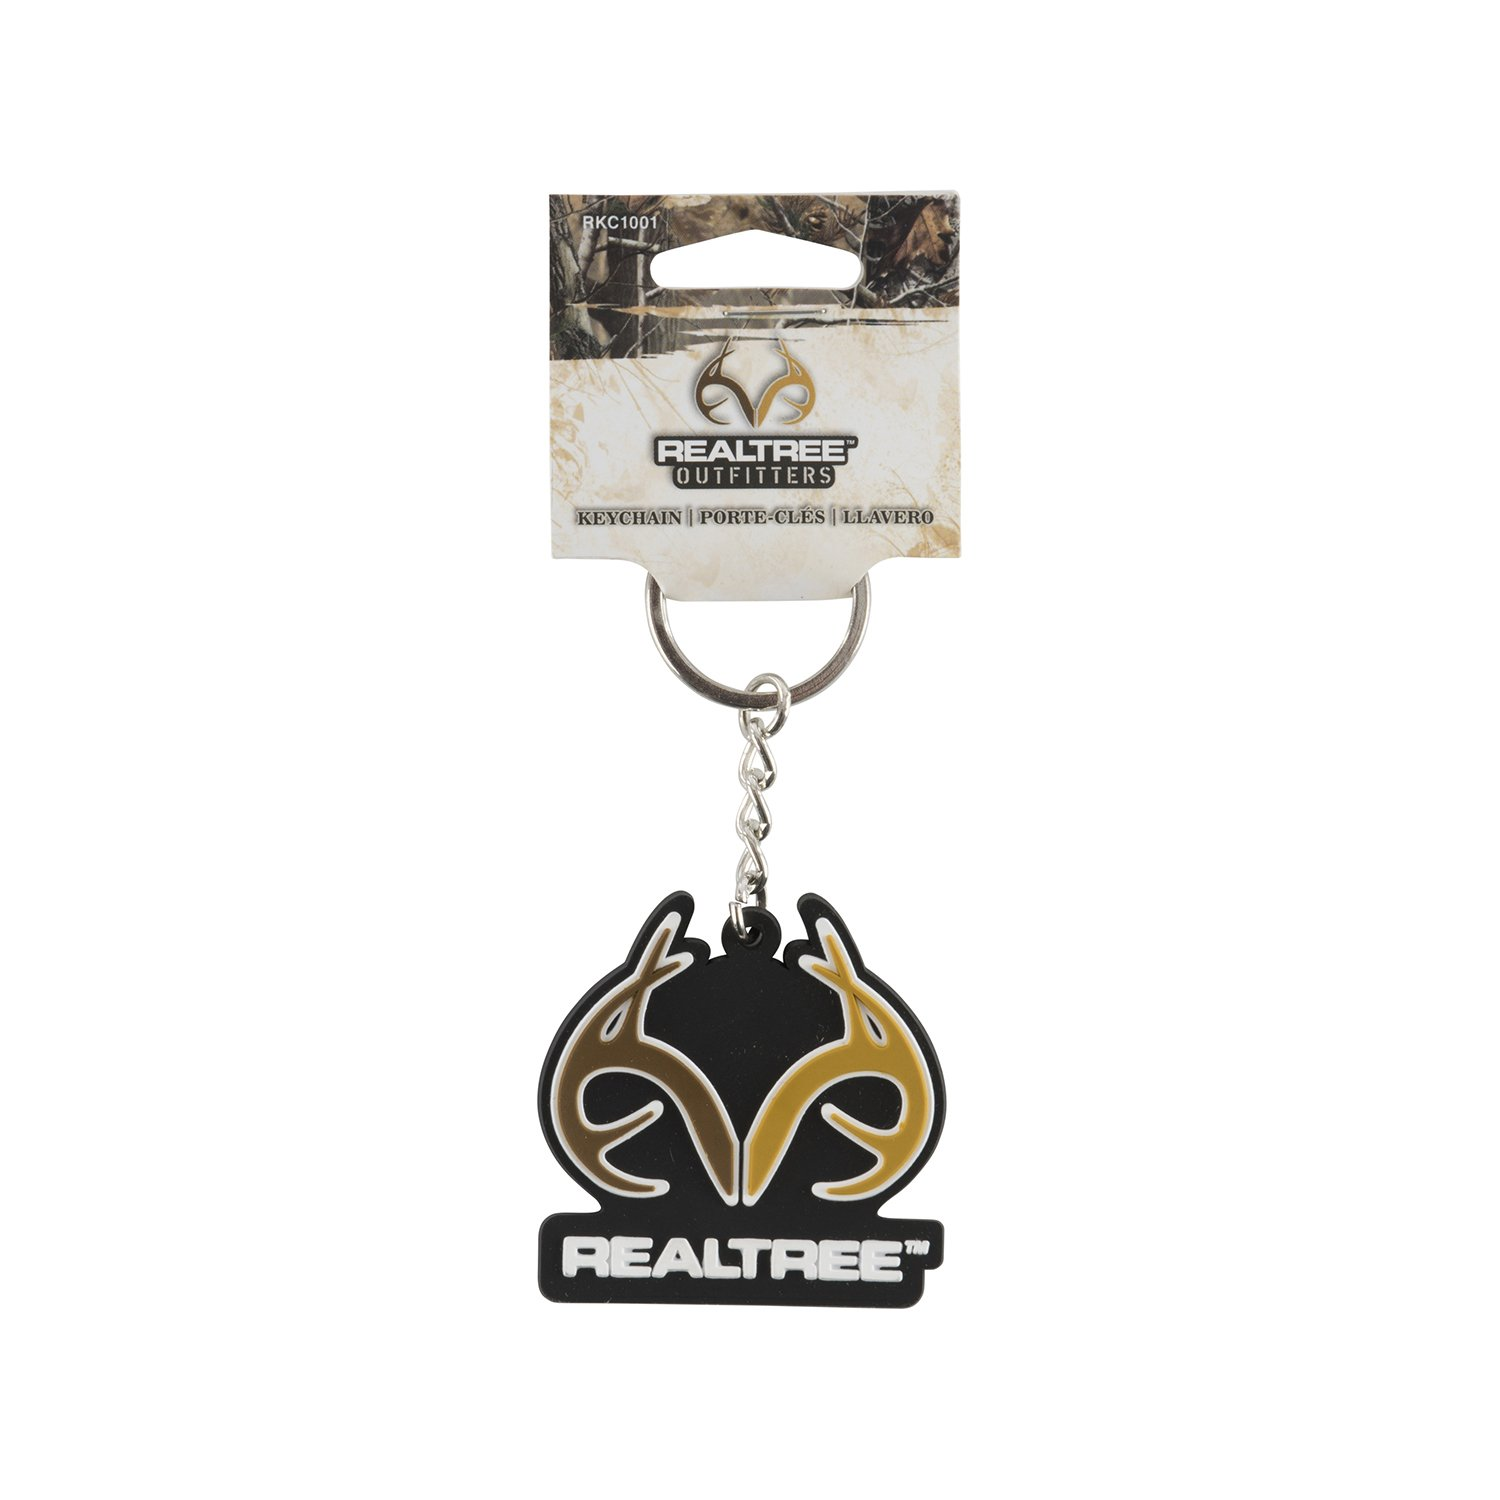 Realtree Outfitters Rubber Keychain